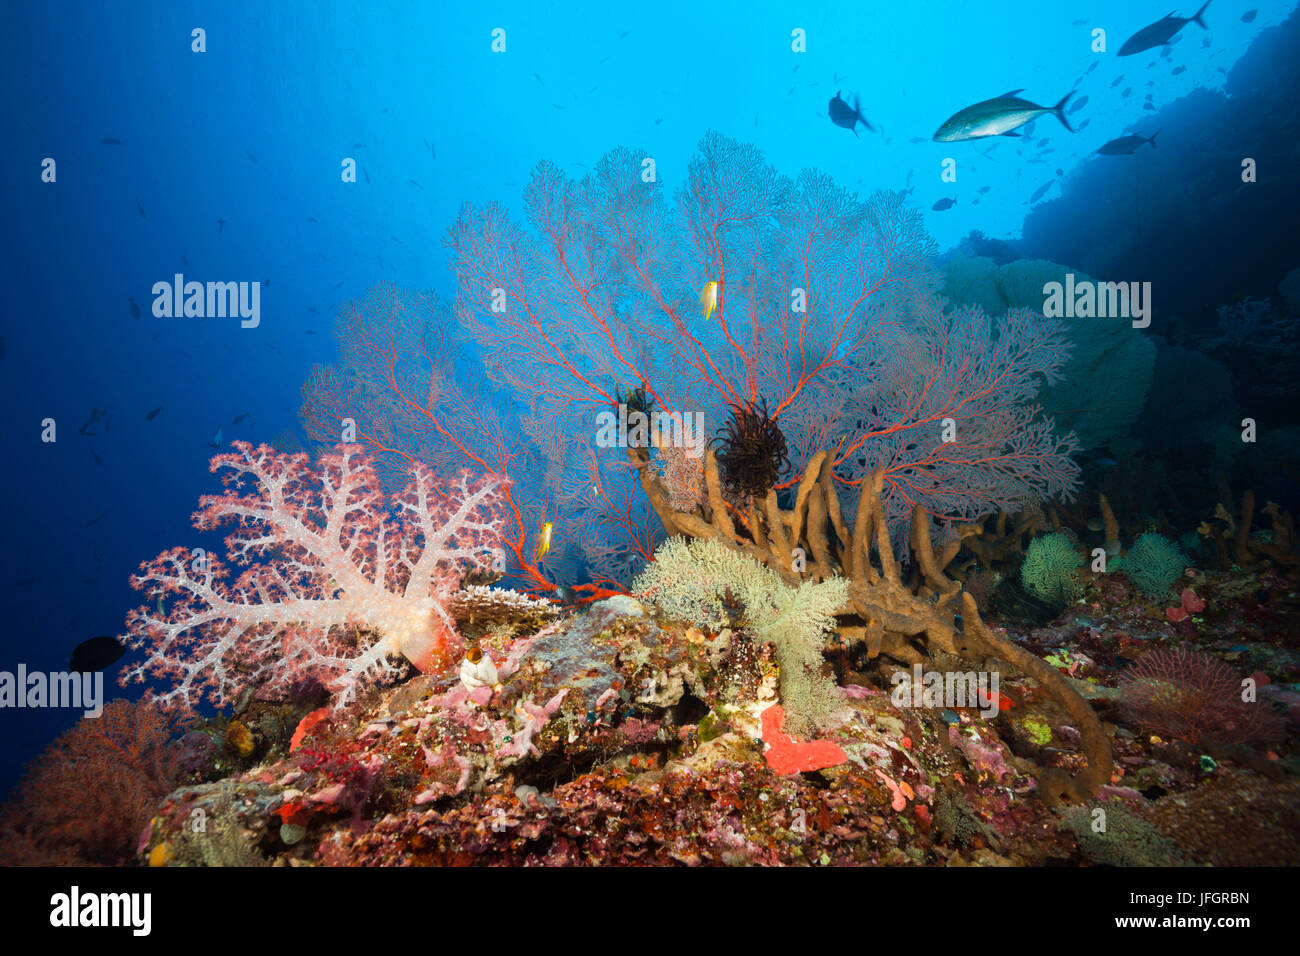 Very varied coral reef, Russell islands, the Solomon Islands - Stock Image